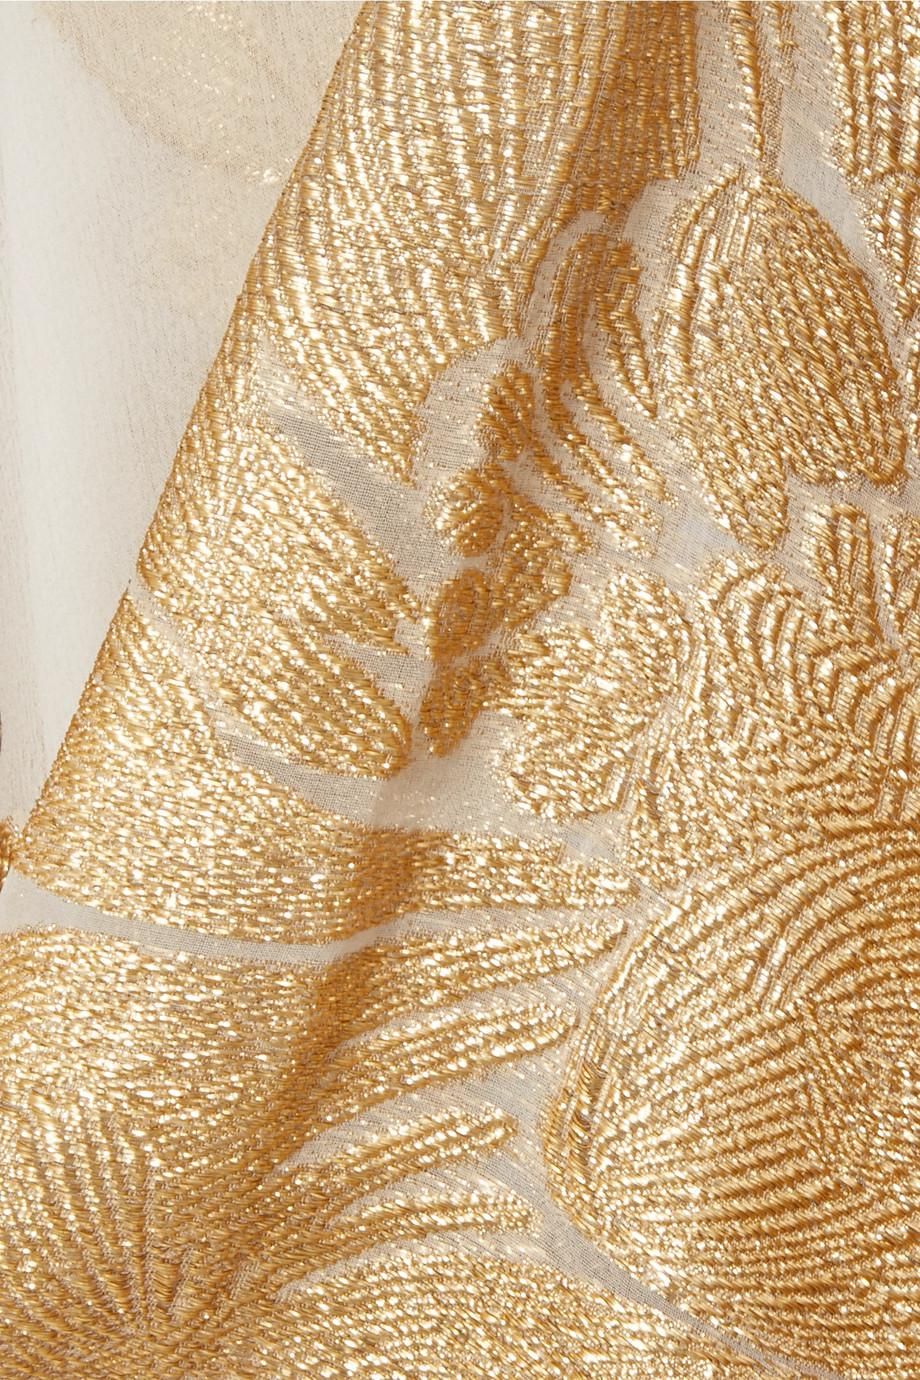 Cheap Sale Looking For Countdown Package Online Big Flower Babani Metallic Silk-blend Chiffon And Jacquard Kimono - Gold Marie France Van Damme Buy Cheap Best Place Under 50 Dollars Browse Cheap Online dO33eH